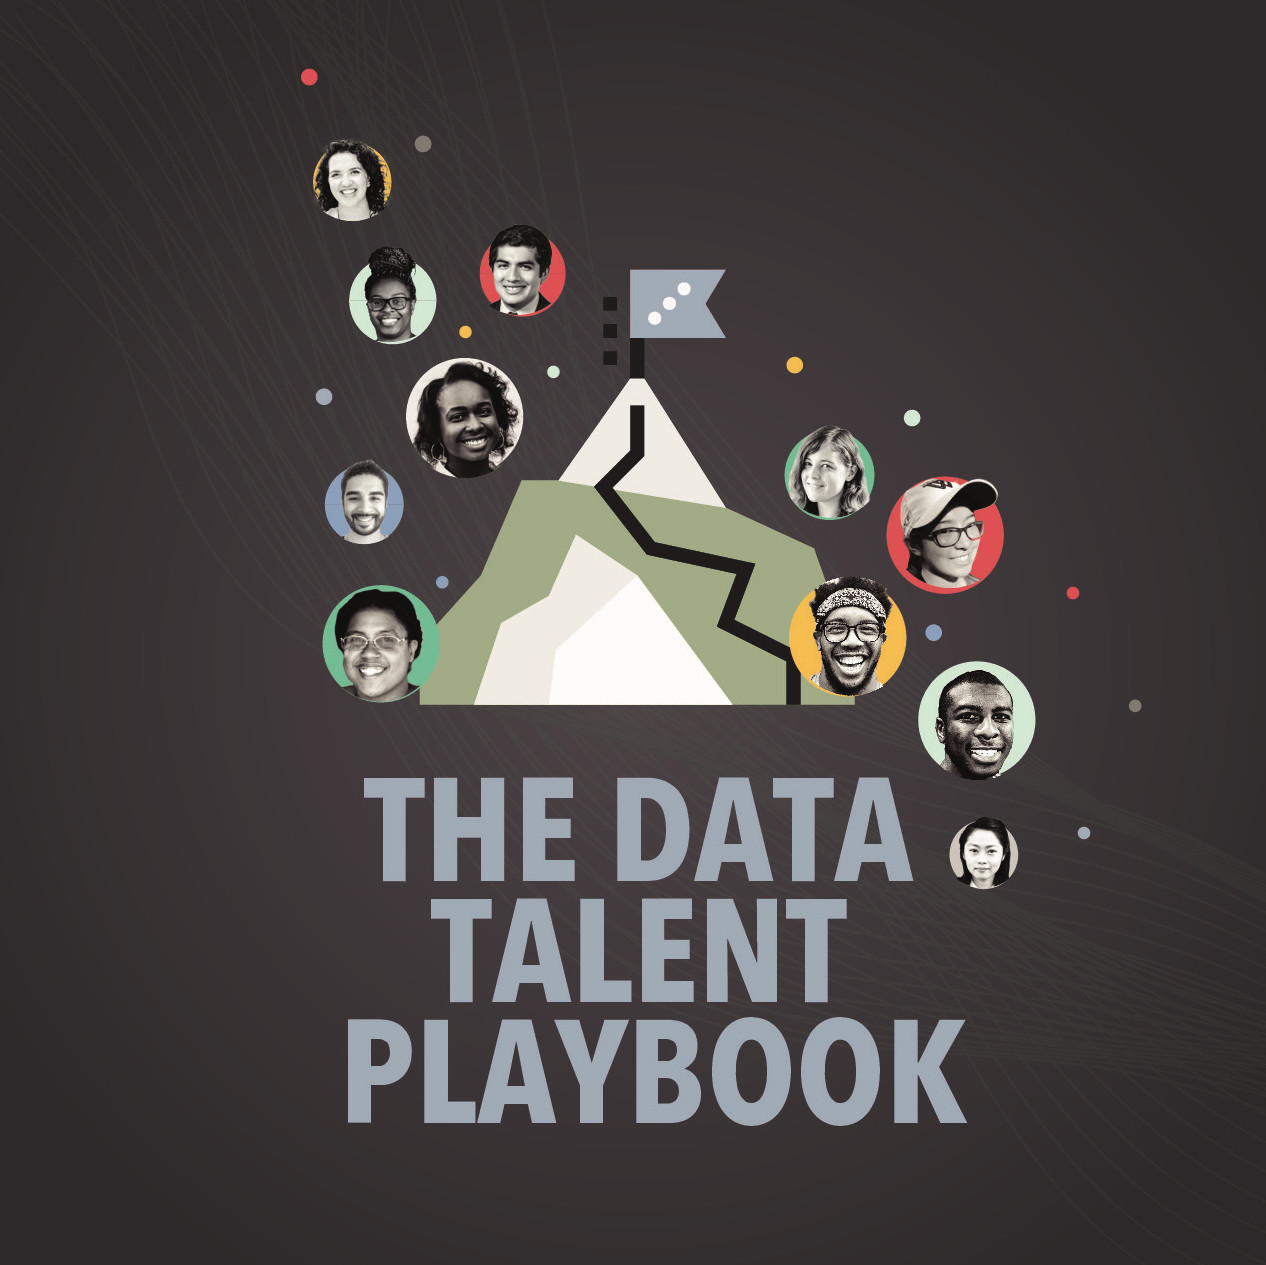 The Data Talent Playbook from Correlation One